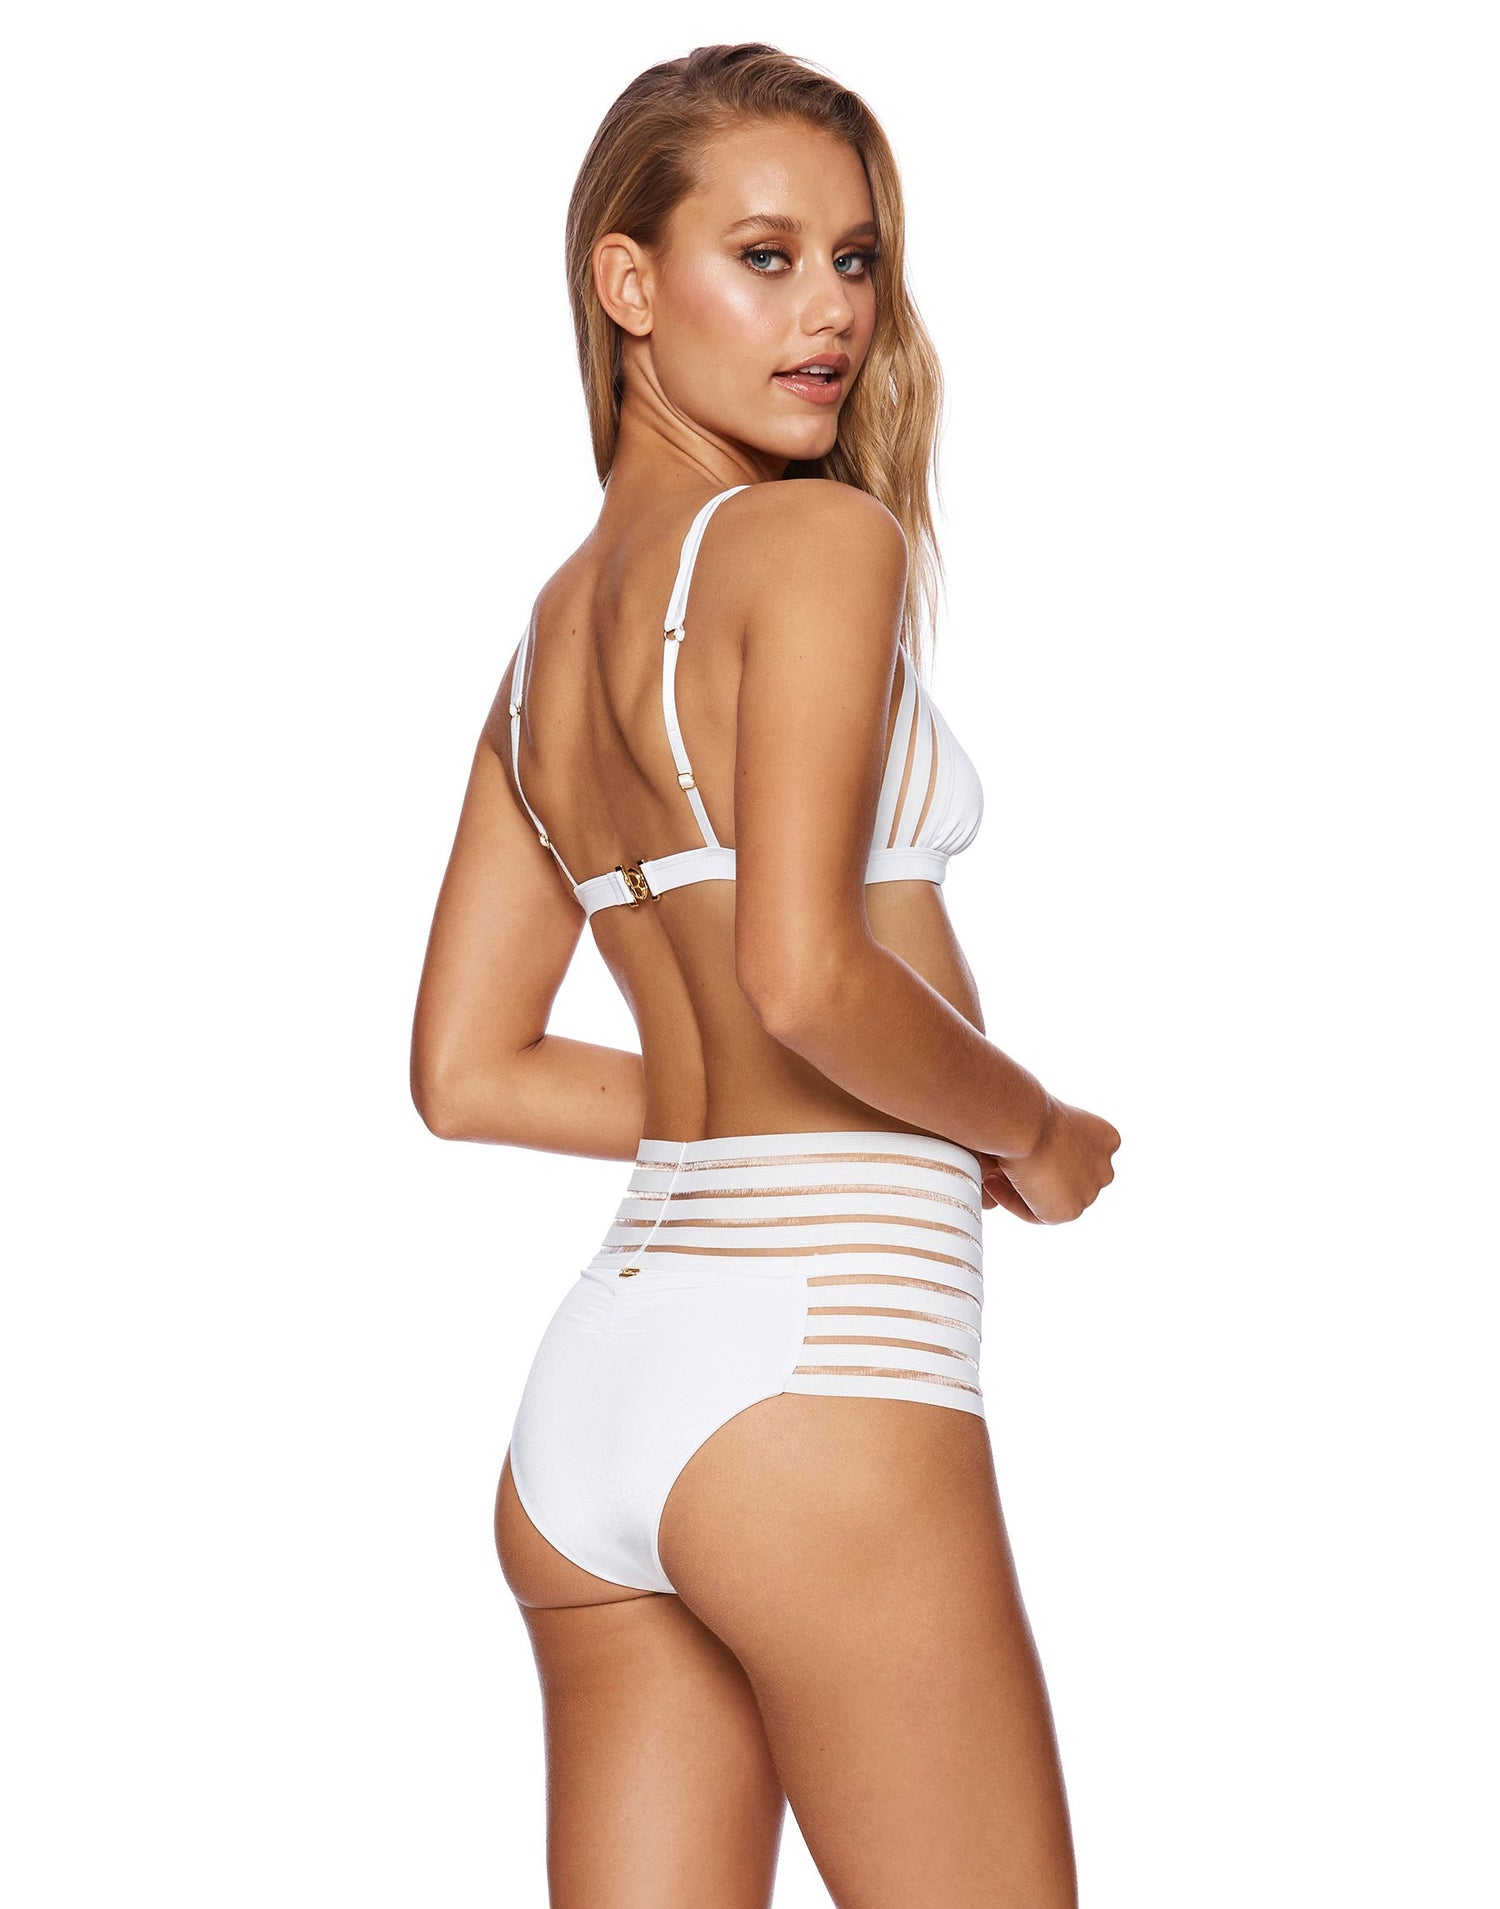 Sheer Addiction High Waist Bikini Bottom in White with Sheer Elastic Stripes - back view